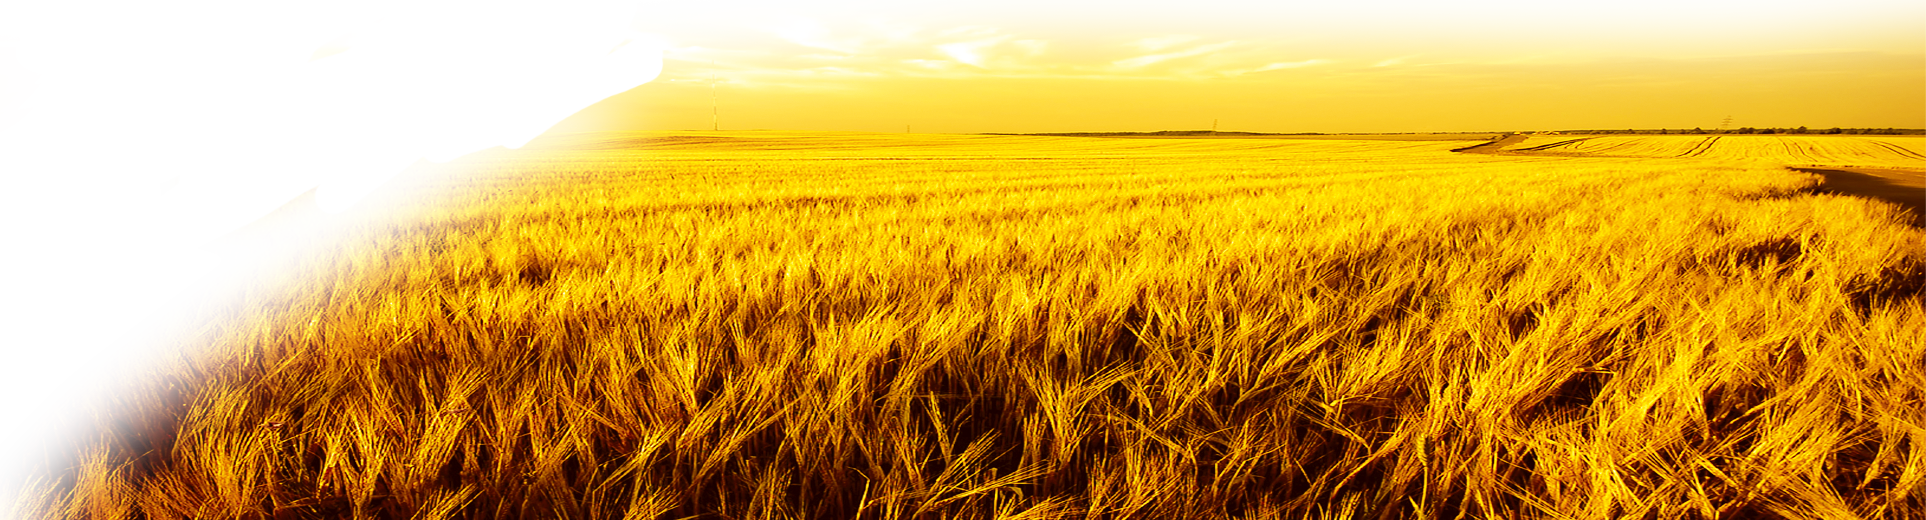 Wheat field png. Harvest autumn transprent free